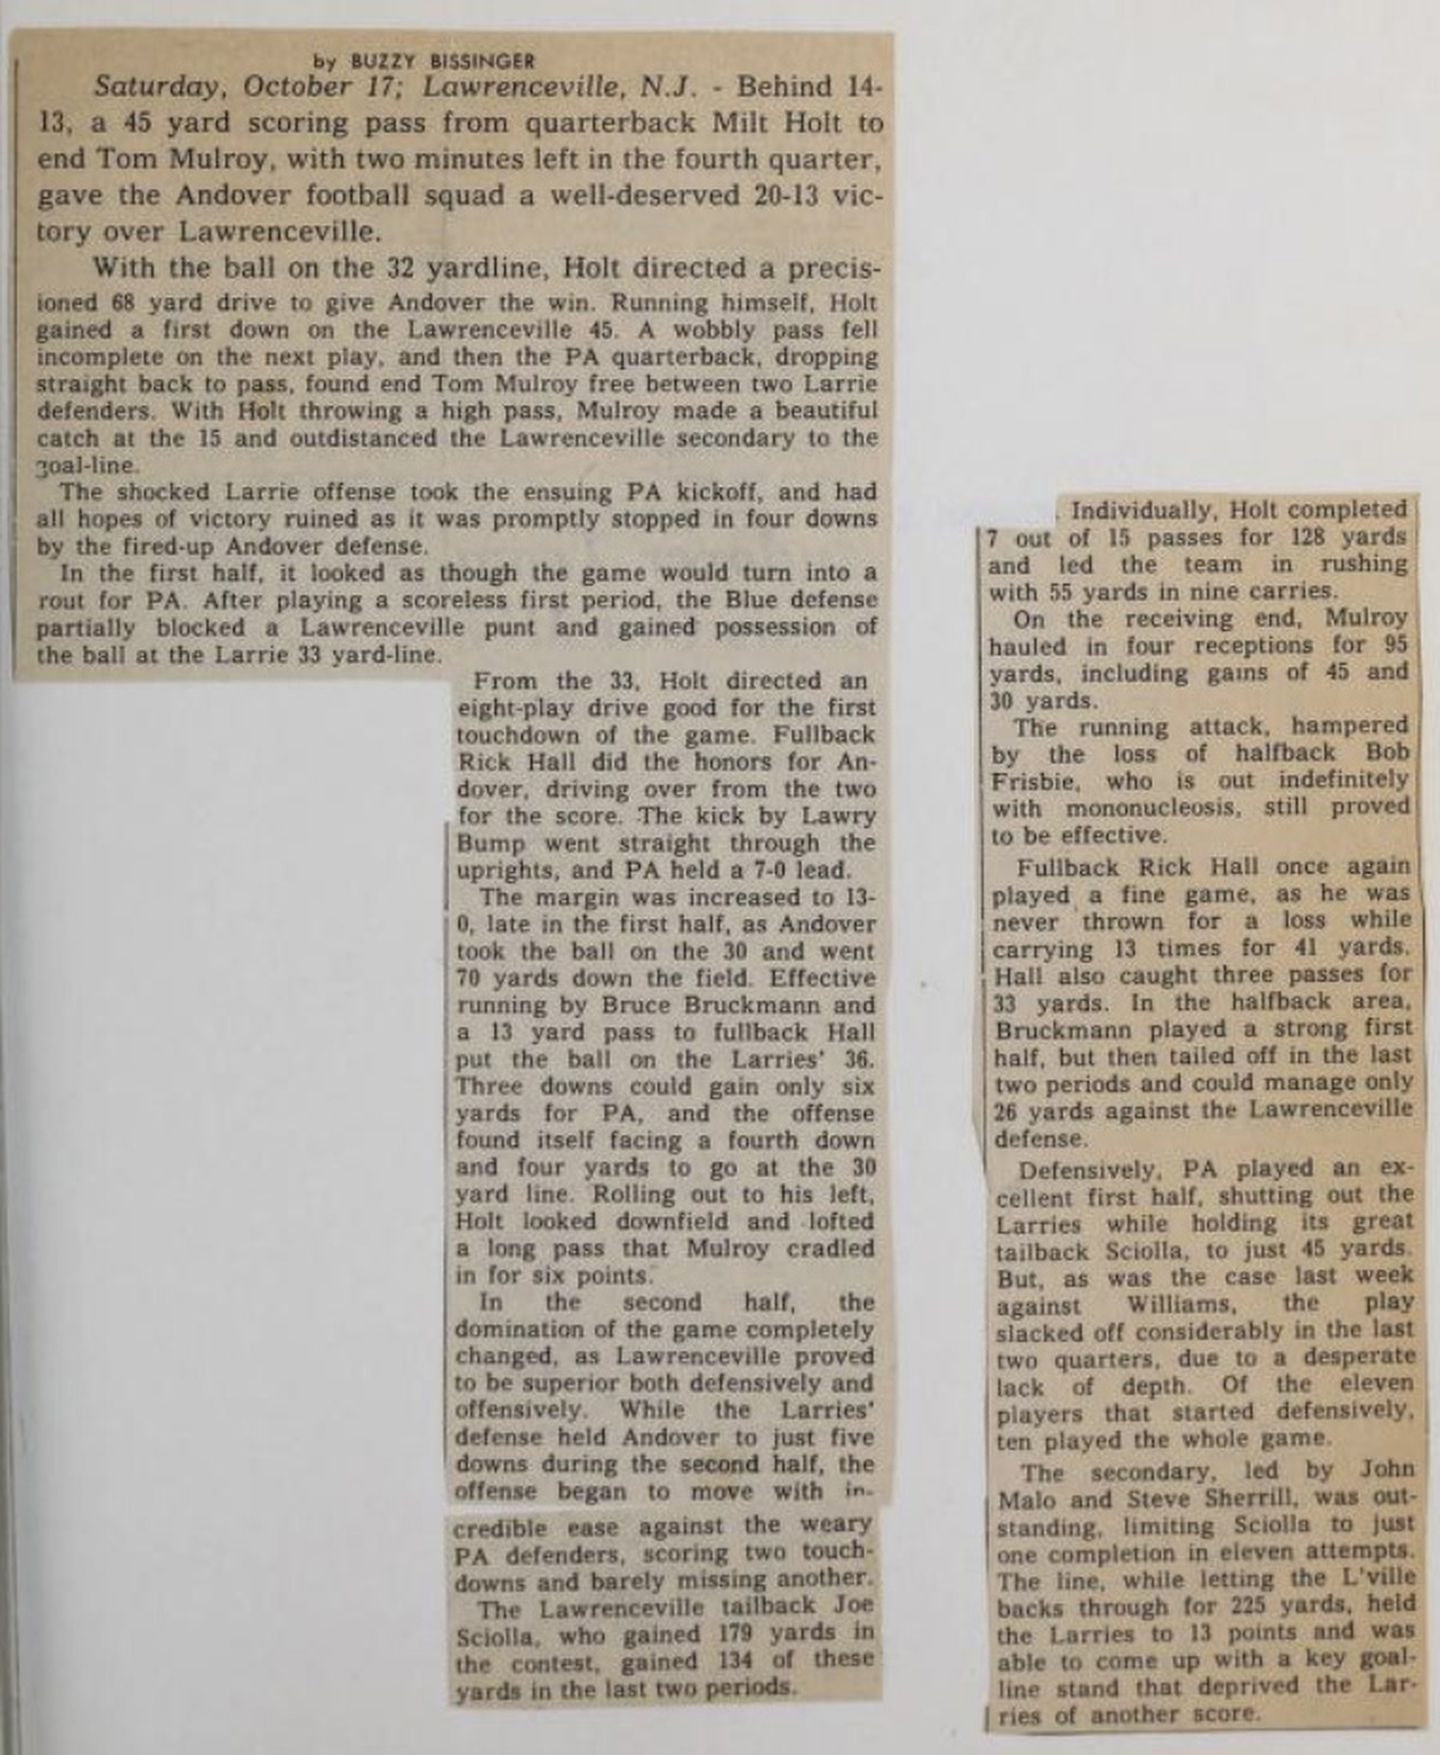 "A Phillipian article by Buzz Bissinger about the Lawrenceville game. ""With the ball on the 32 yardline, Holt directed a precisioned 68 yard drive to give Andover the win,"" Bissinger wrote."